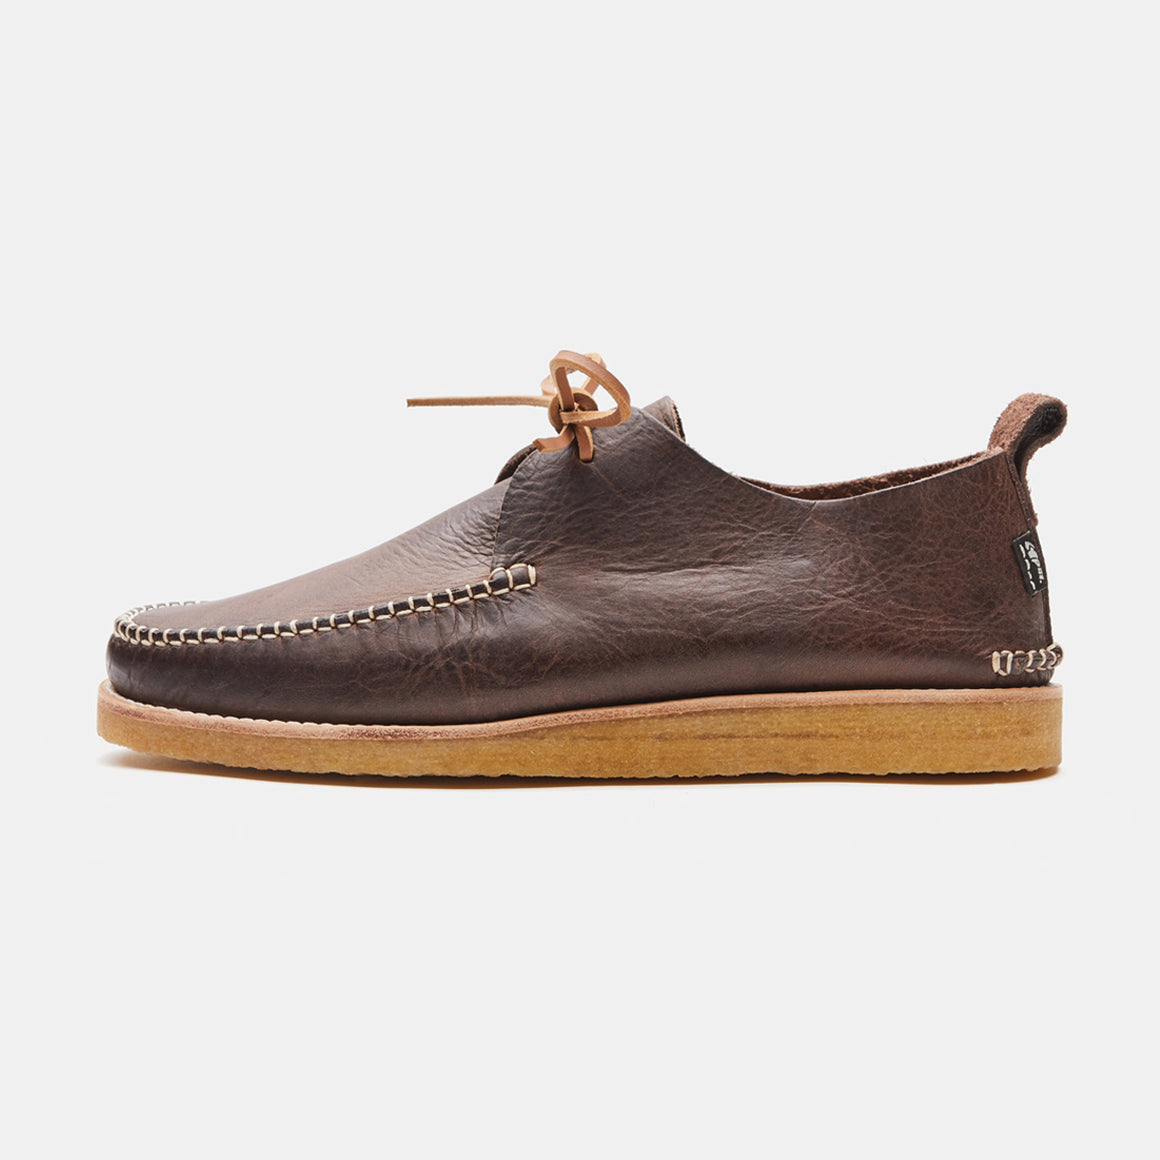 Yogi Lawson Leather Moccasin (Chocolate)